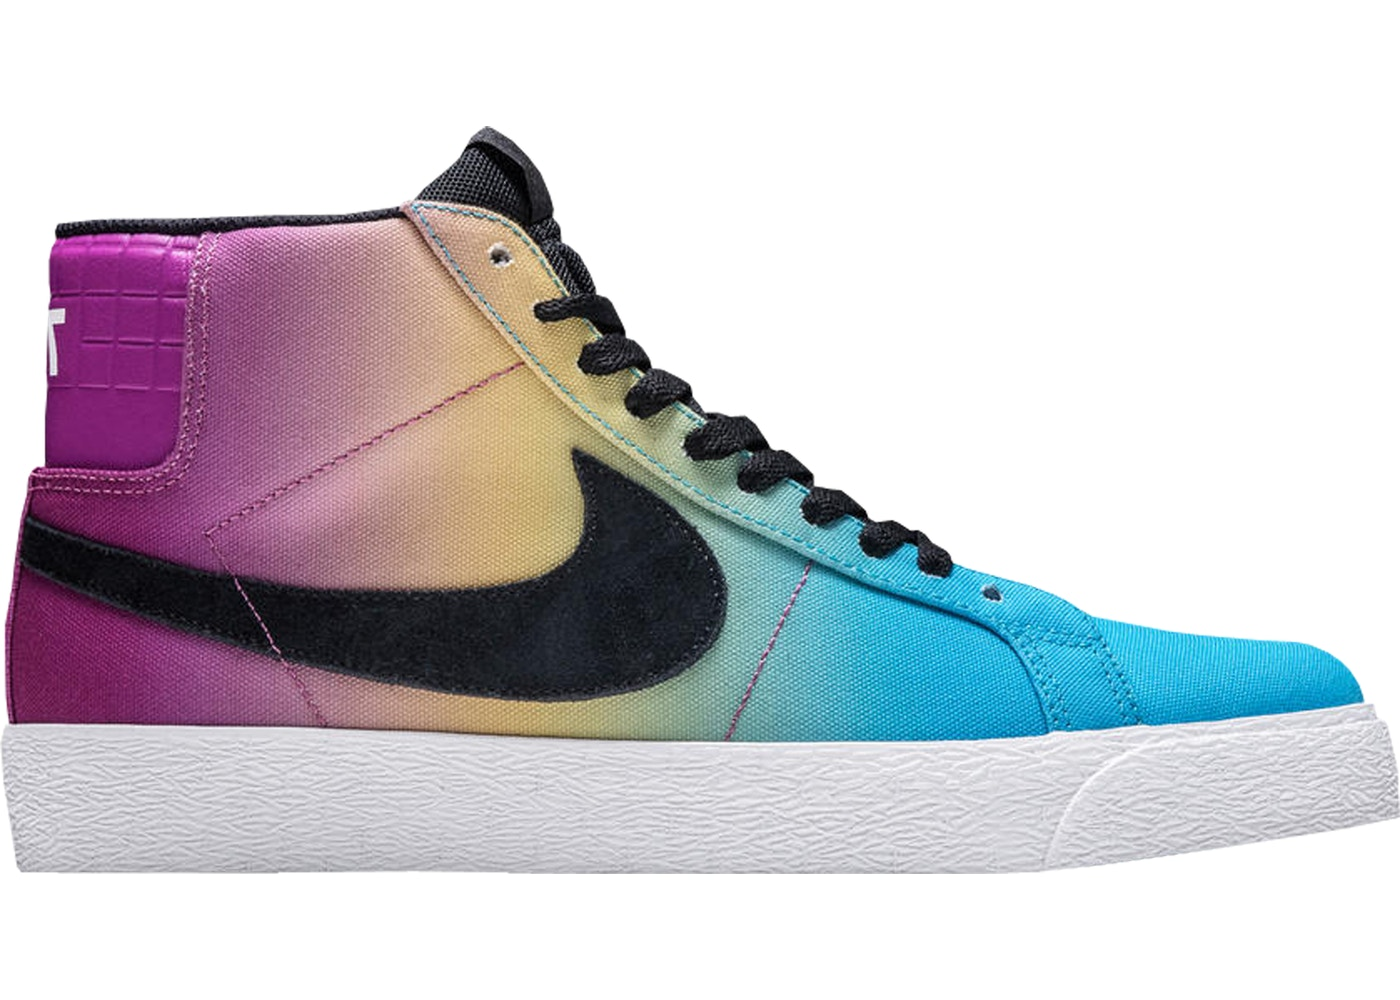 d4b3a03d9caf9 Sell. or Ask. Size: 10.5. View All Bids. Nike SB Blazer Zoom Mid Lance  Mountain ...